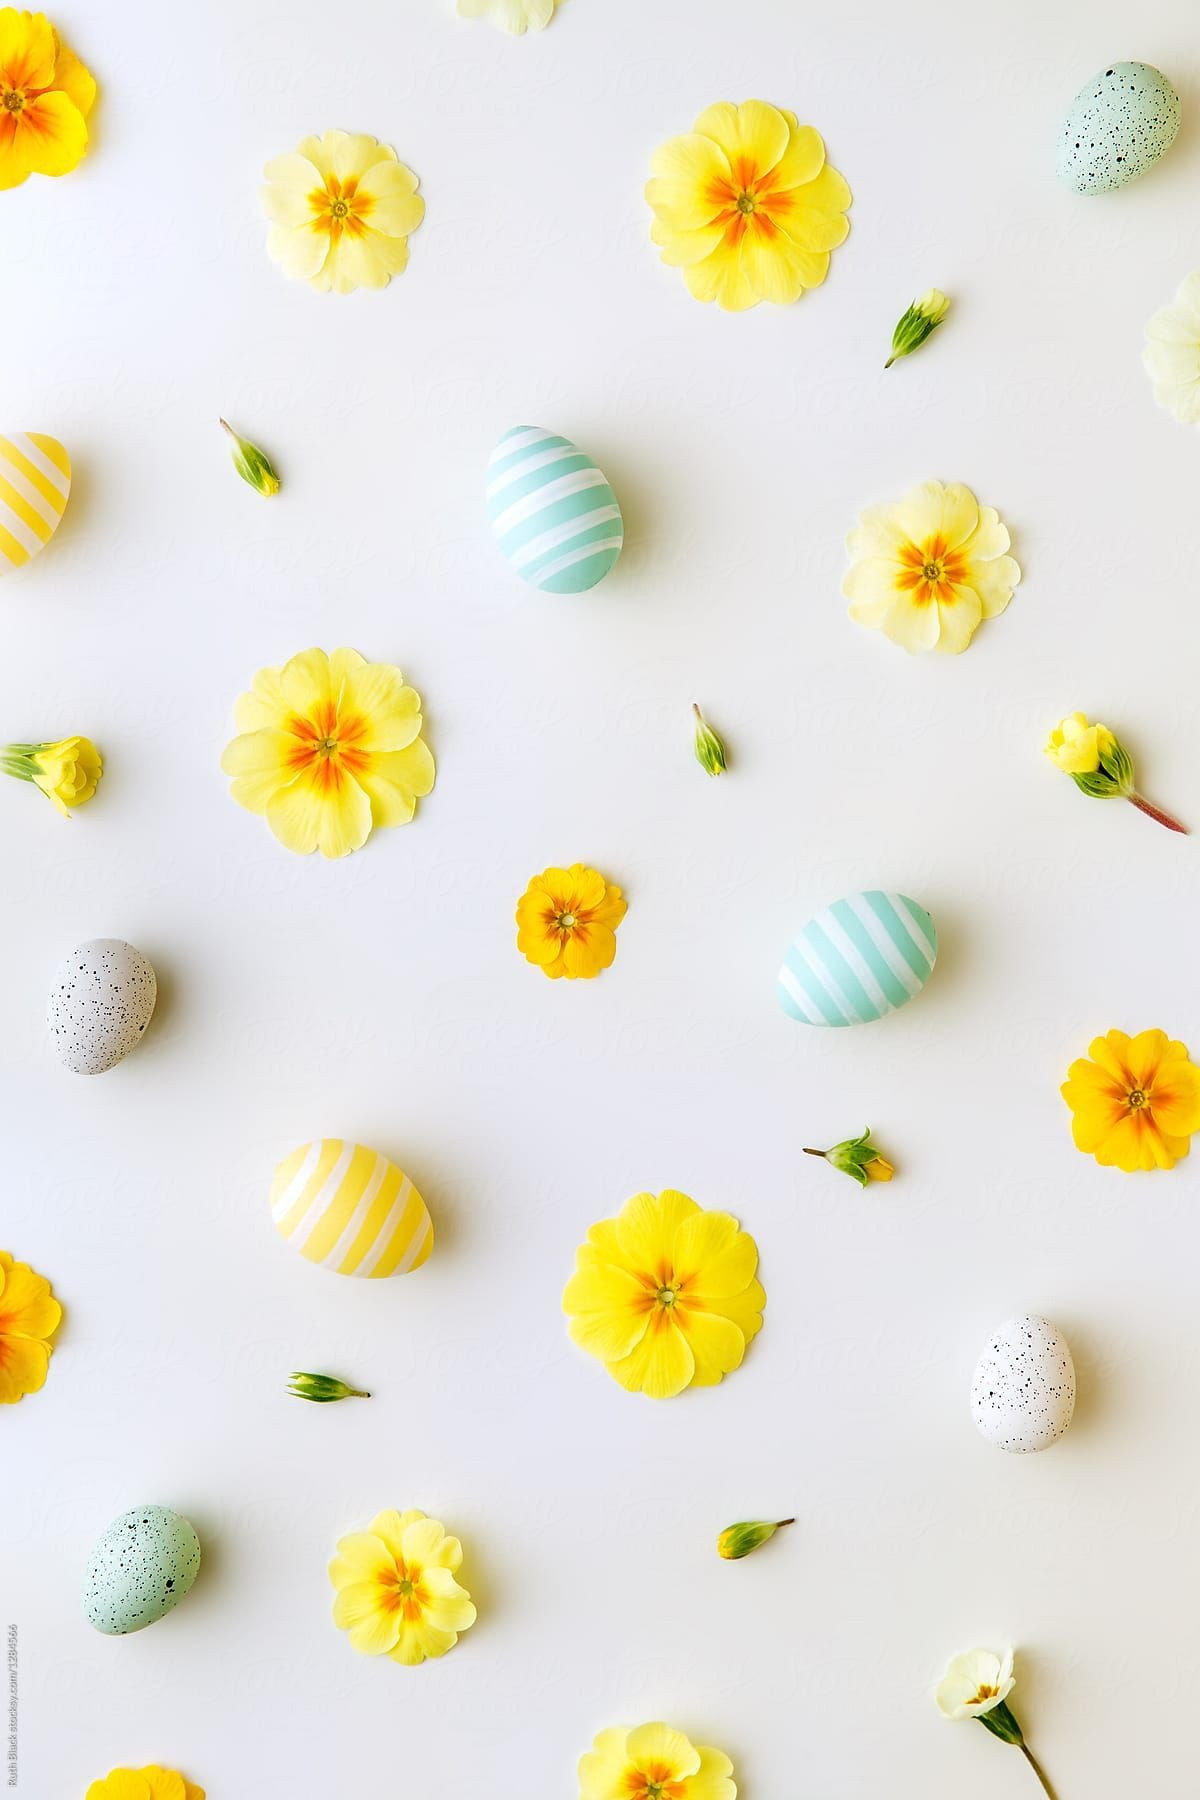 Easter background by Ruth Black - Stocksy United #stock # ...